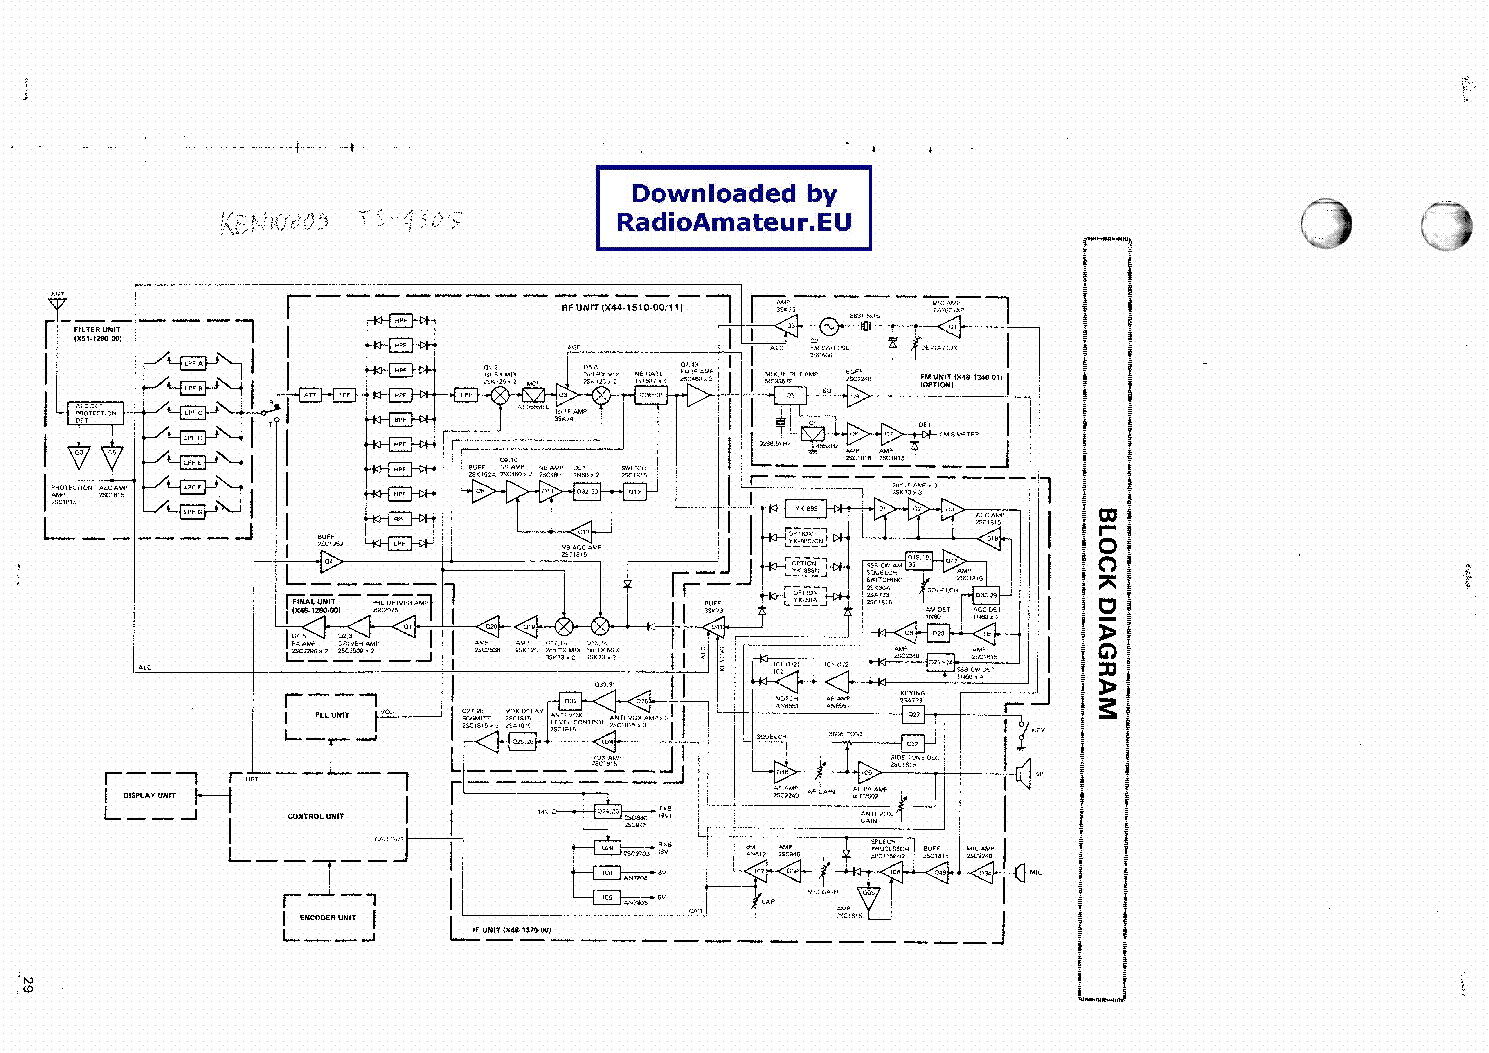 kenwood ts430s service manual download  schematics  eeprom  repair info for electronics experts